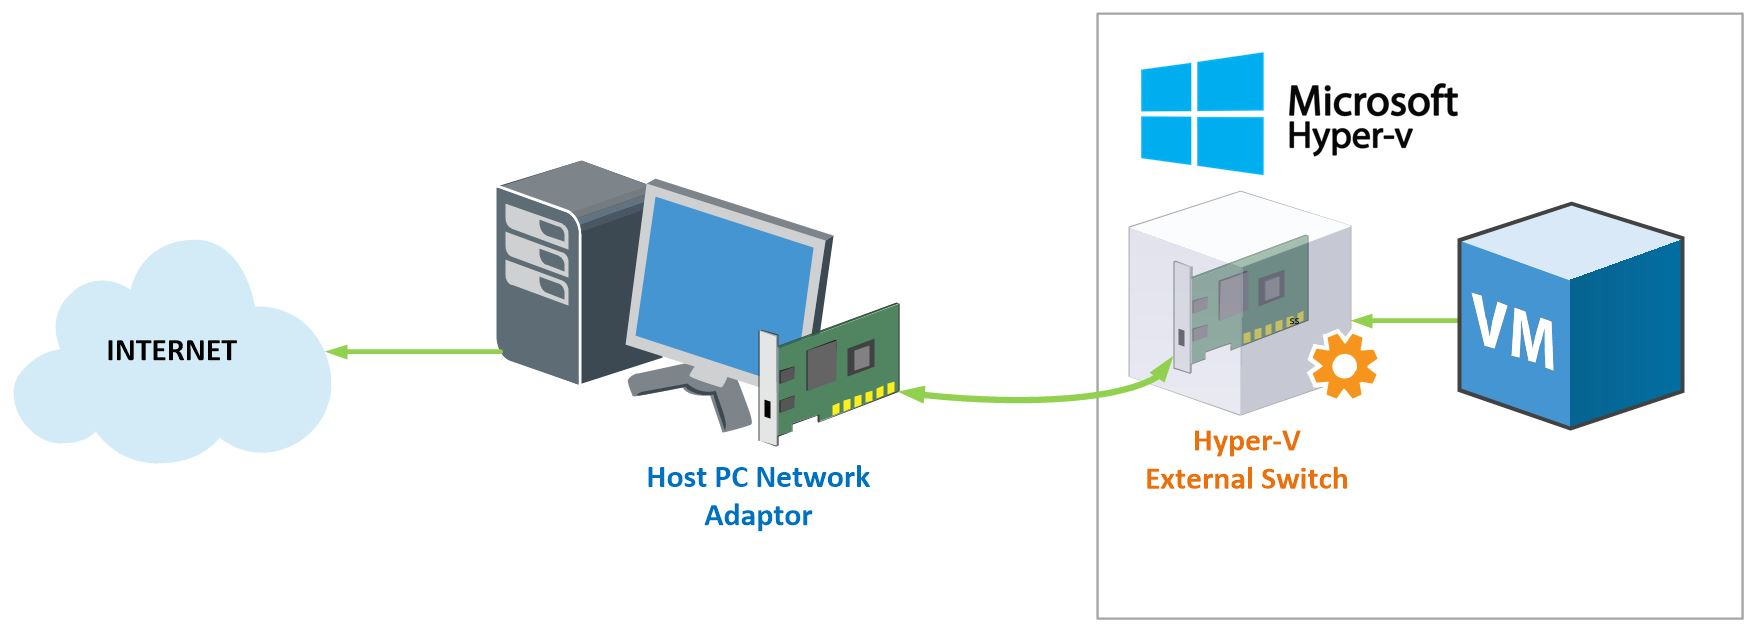 hyper-v external switch network sharing